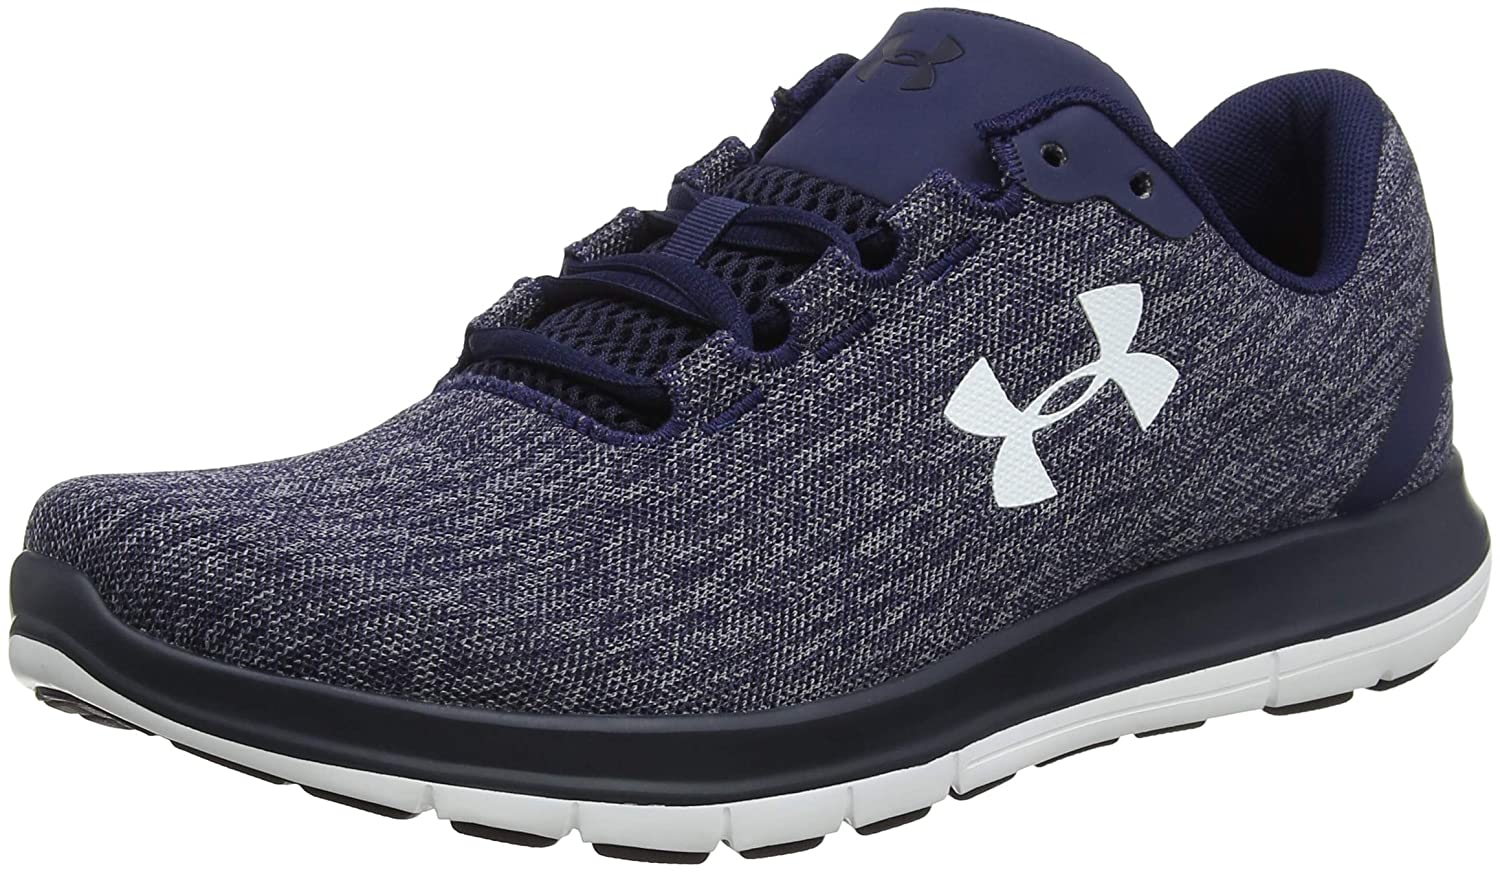 Under Armour Men's Ua Remix Competition Running Shoes 3020193-400